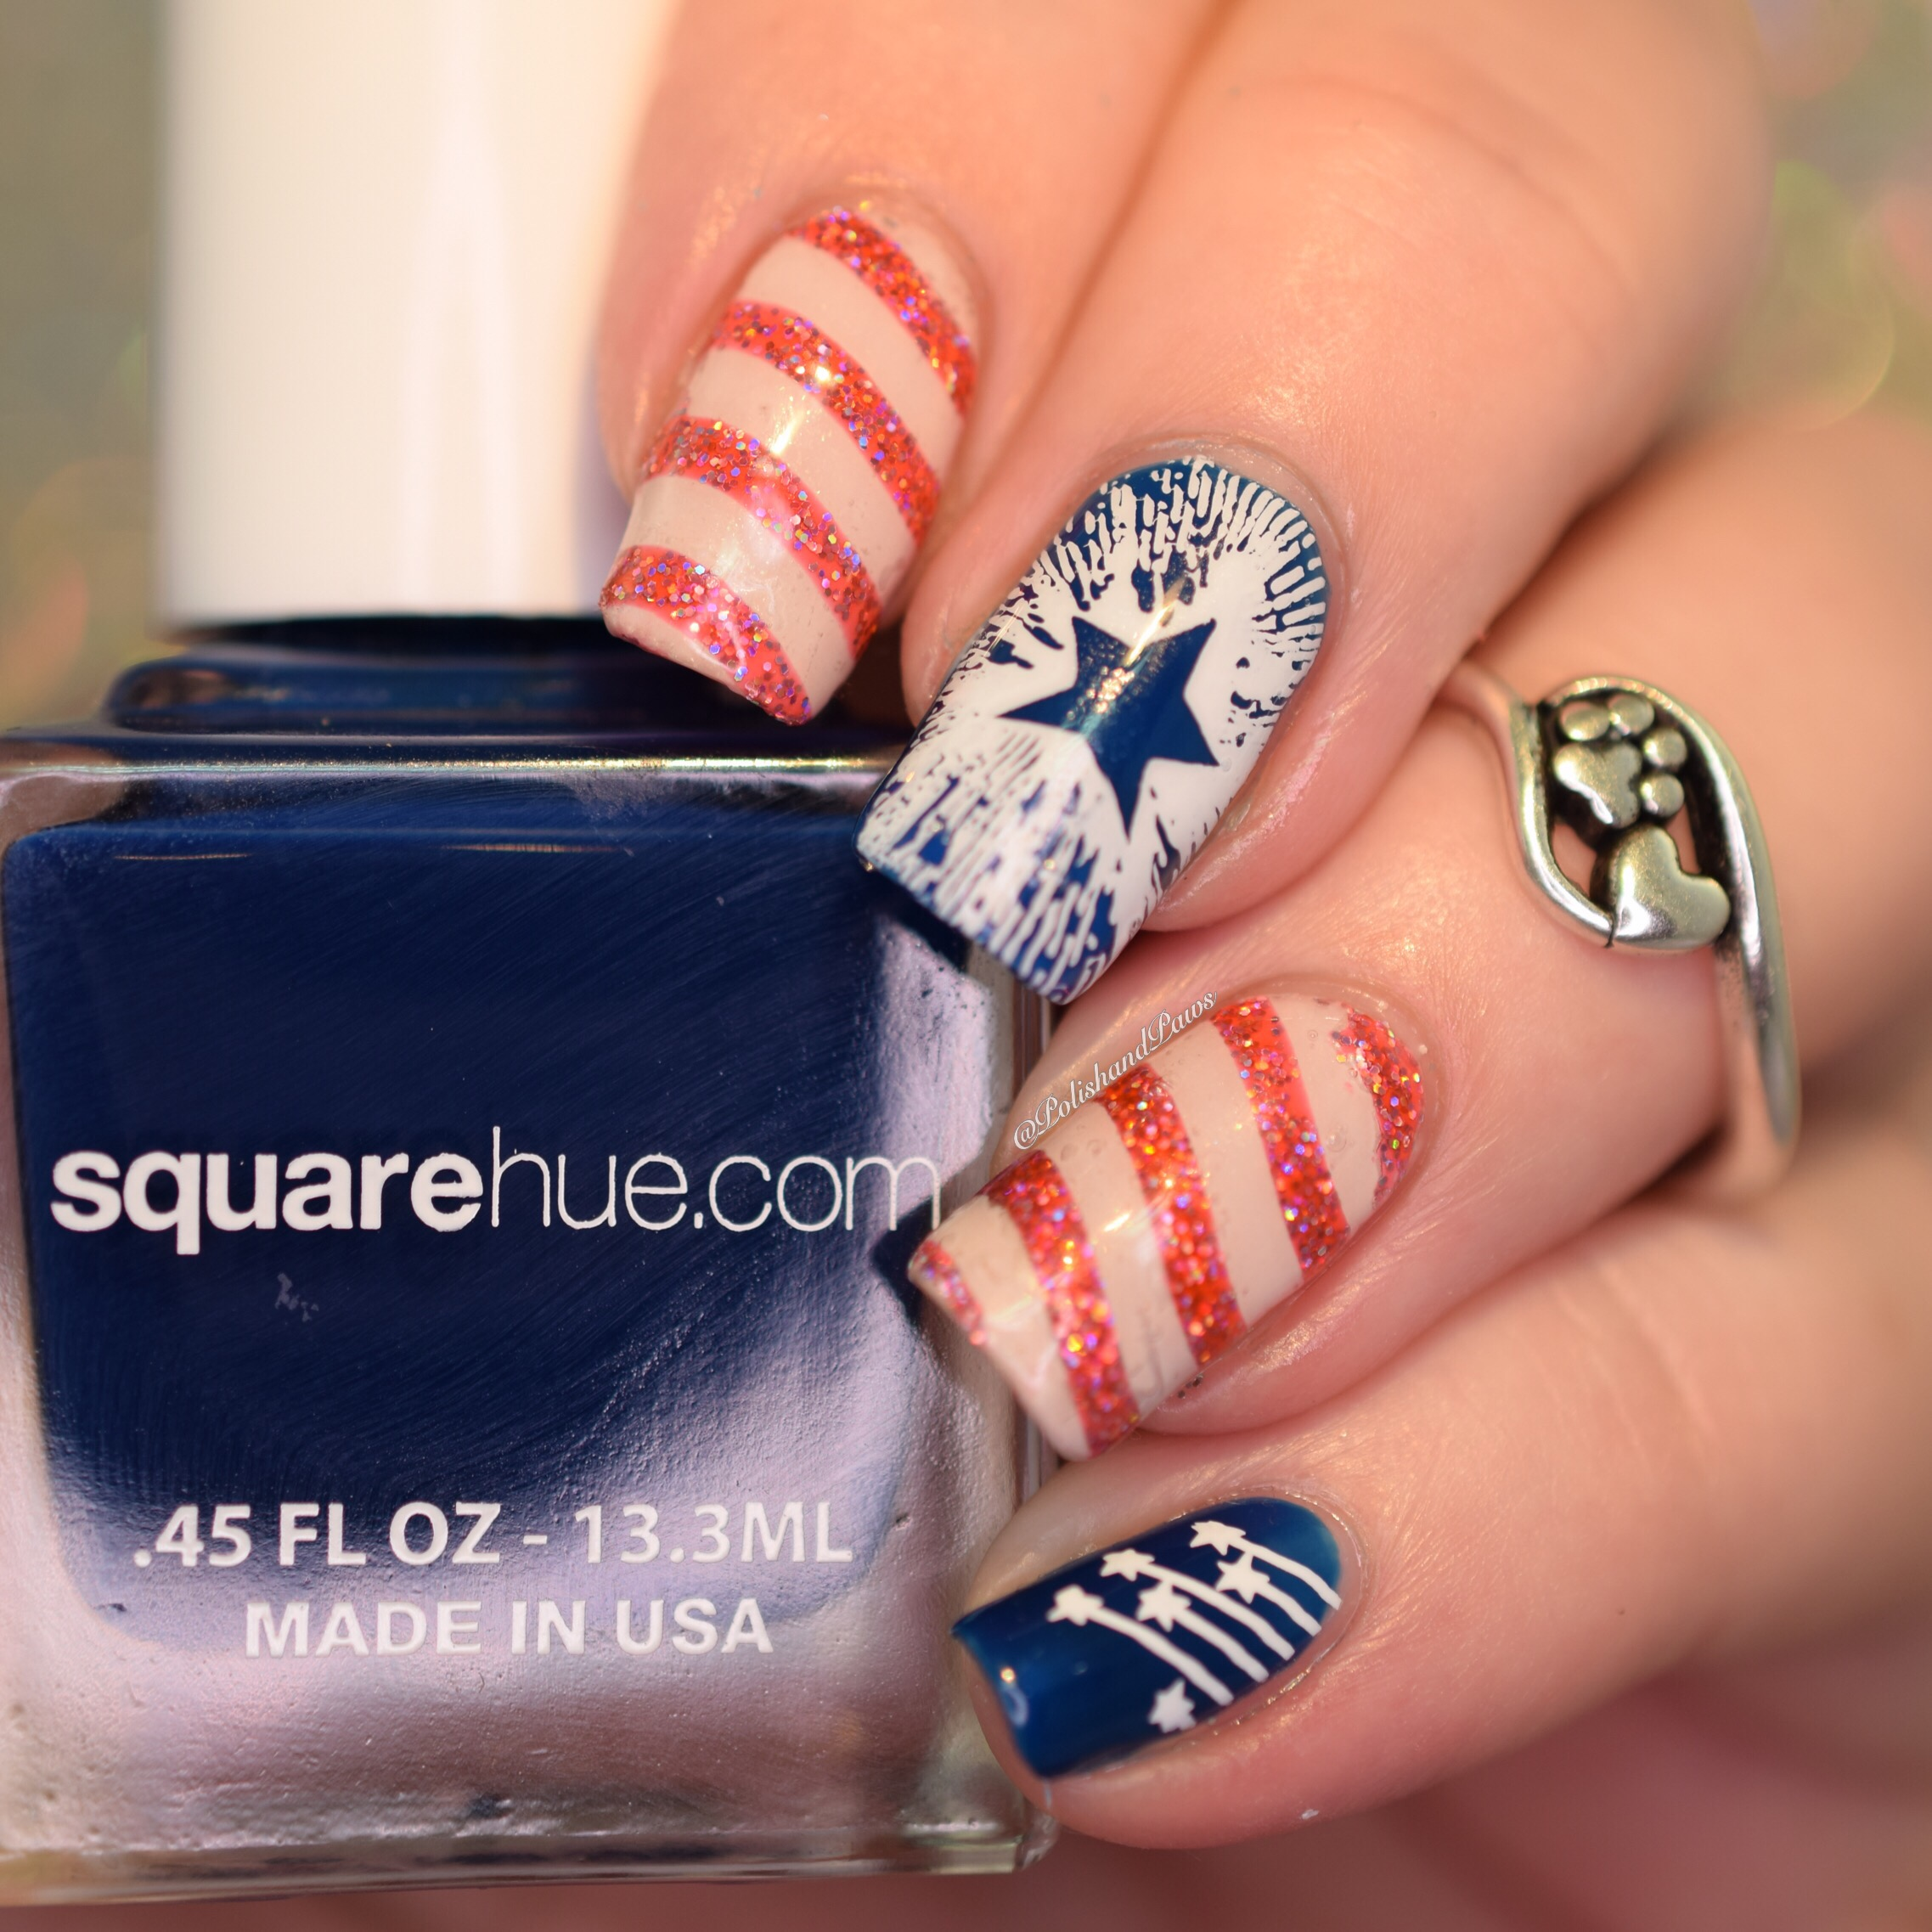 Square Hue Box Nail Art